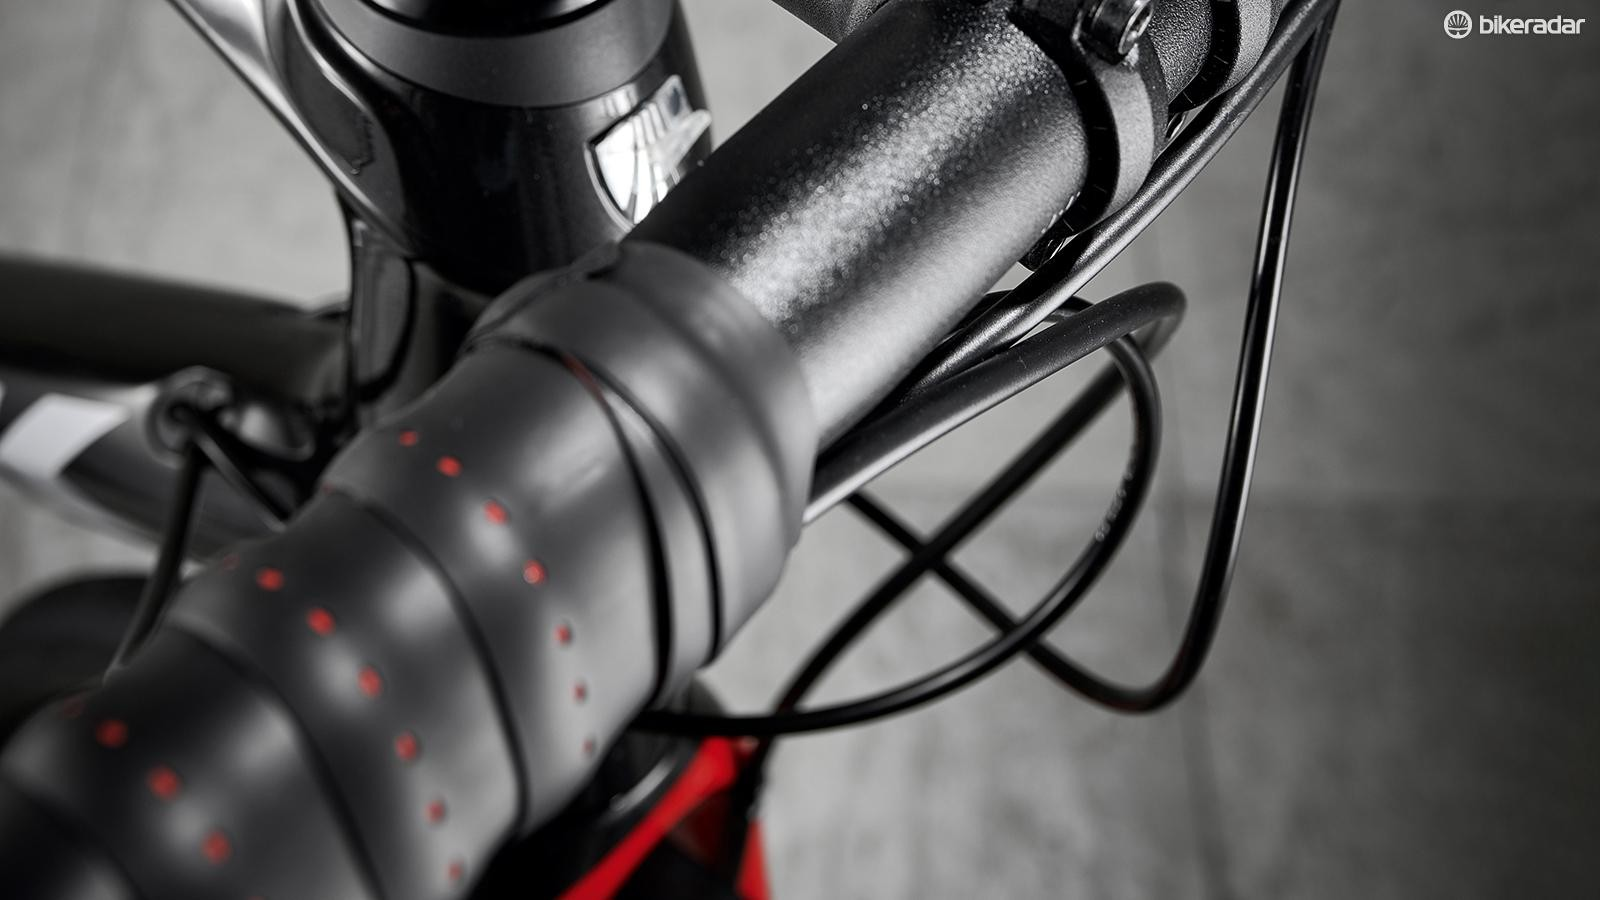 The Comp VR-C handlebar is thickly wrapped